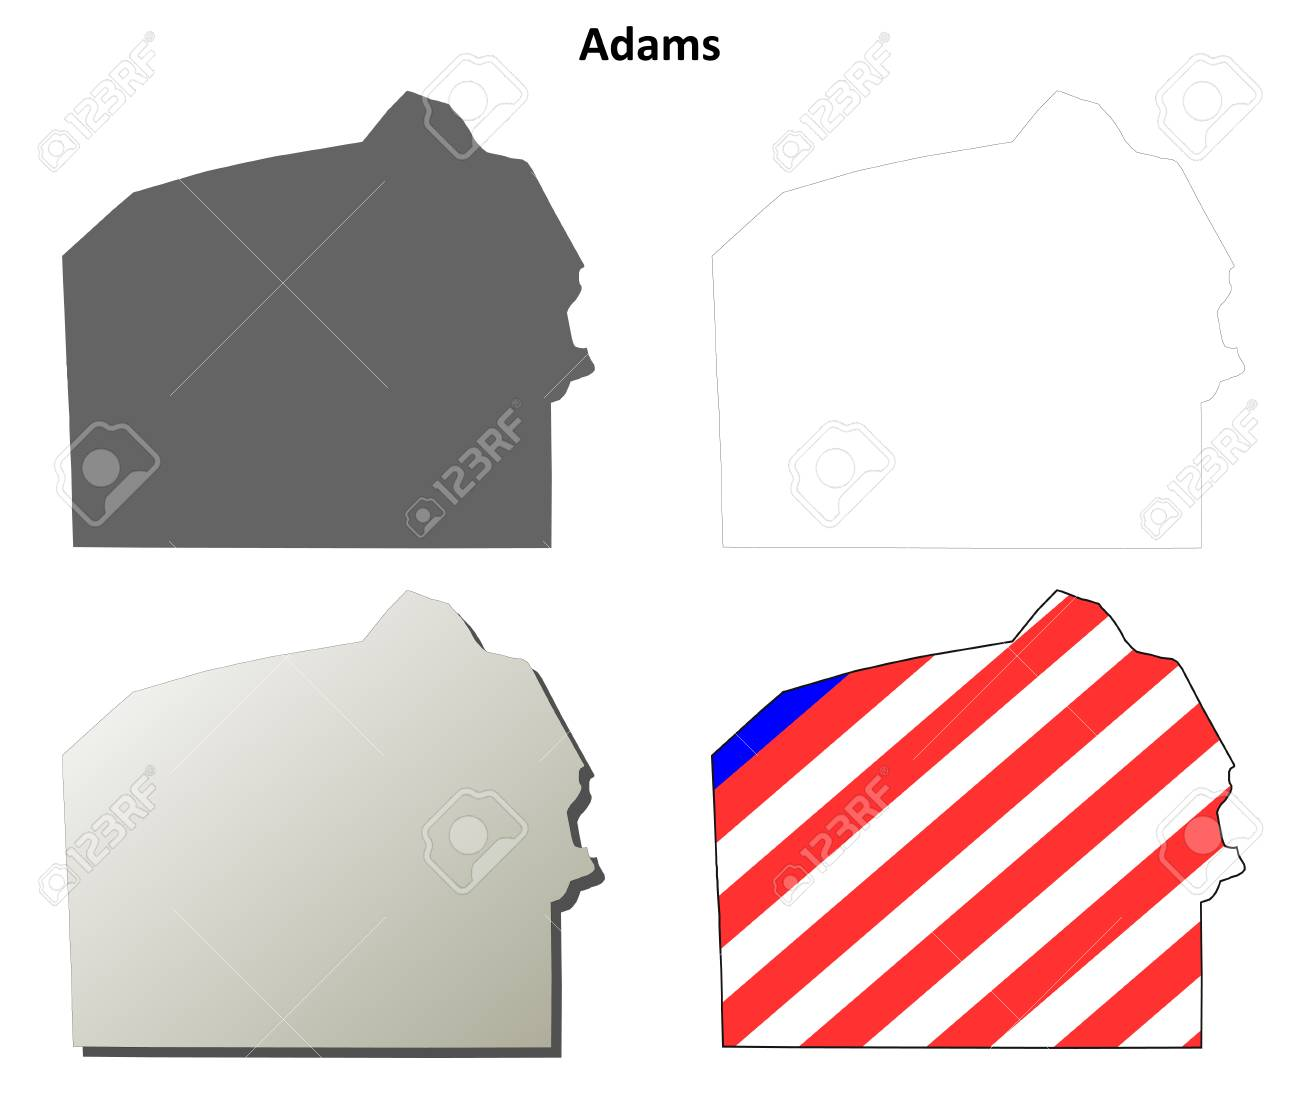 Image of: Adams County Pennsylvania Blank Outline Map Set Royalty Free Cliparts Vectors And Stock Illustration Image 56393486